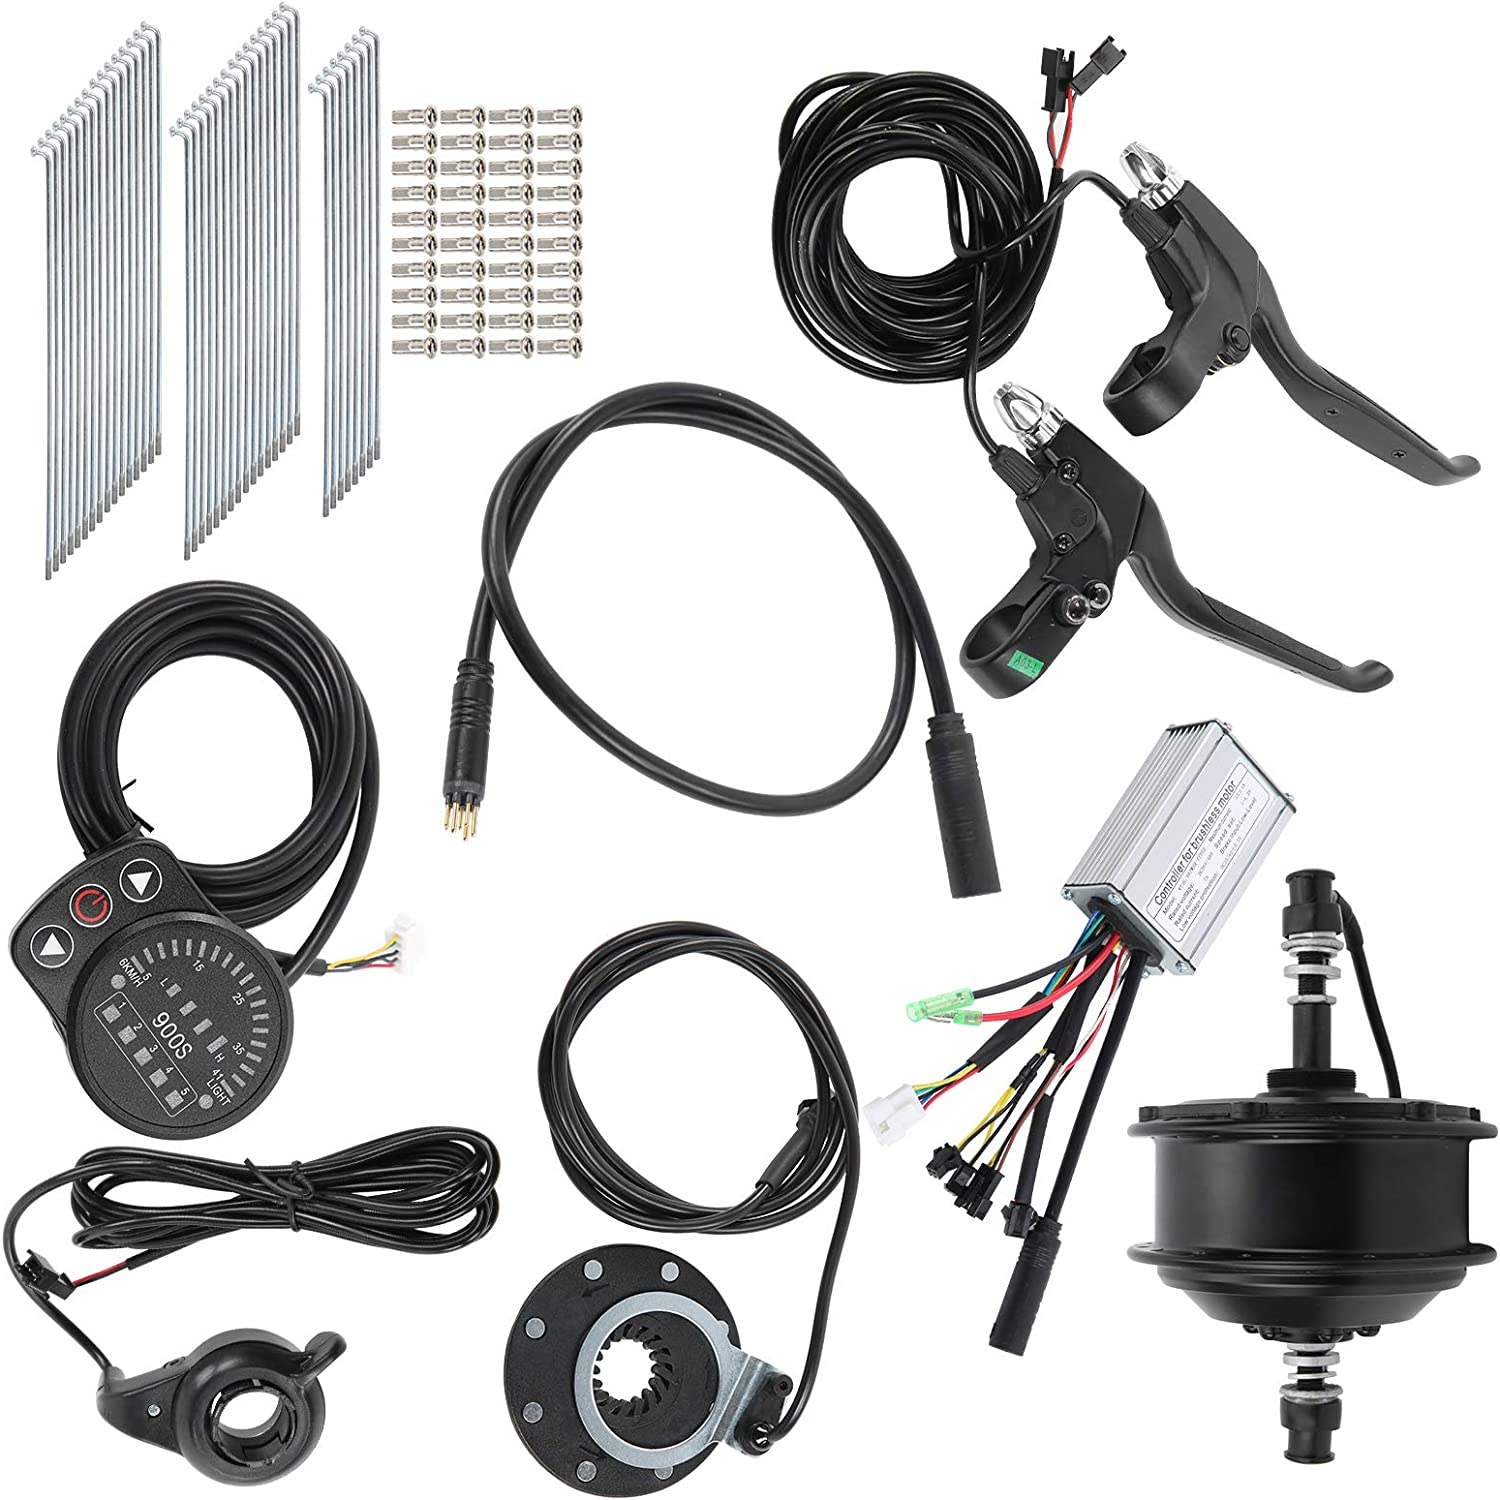 Faceuer 2021 autumn and winter new Electric Hub Motor Memphis Mall Long Life Service Kit 36V